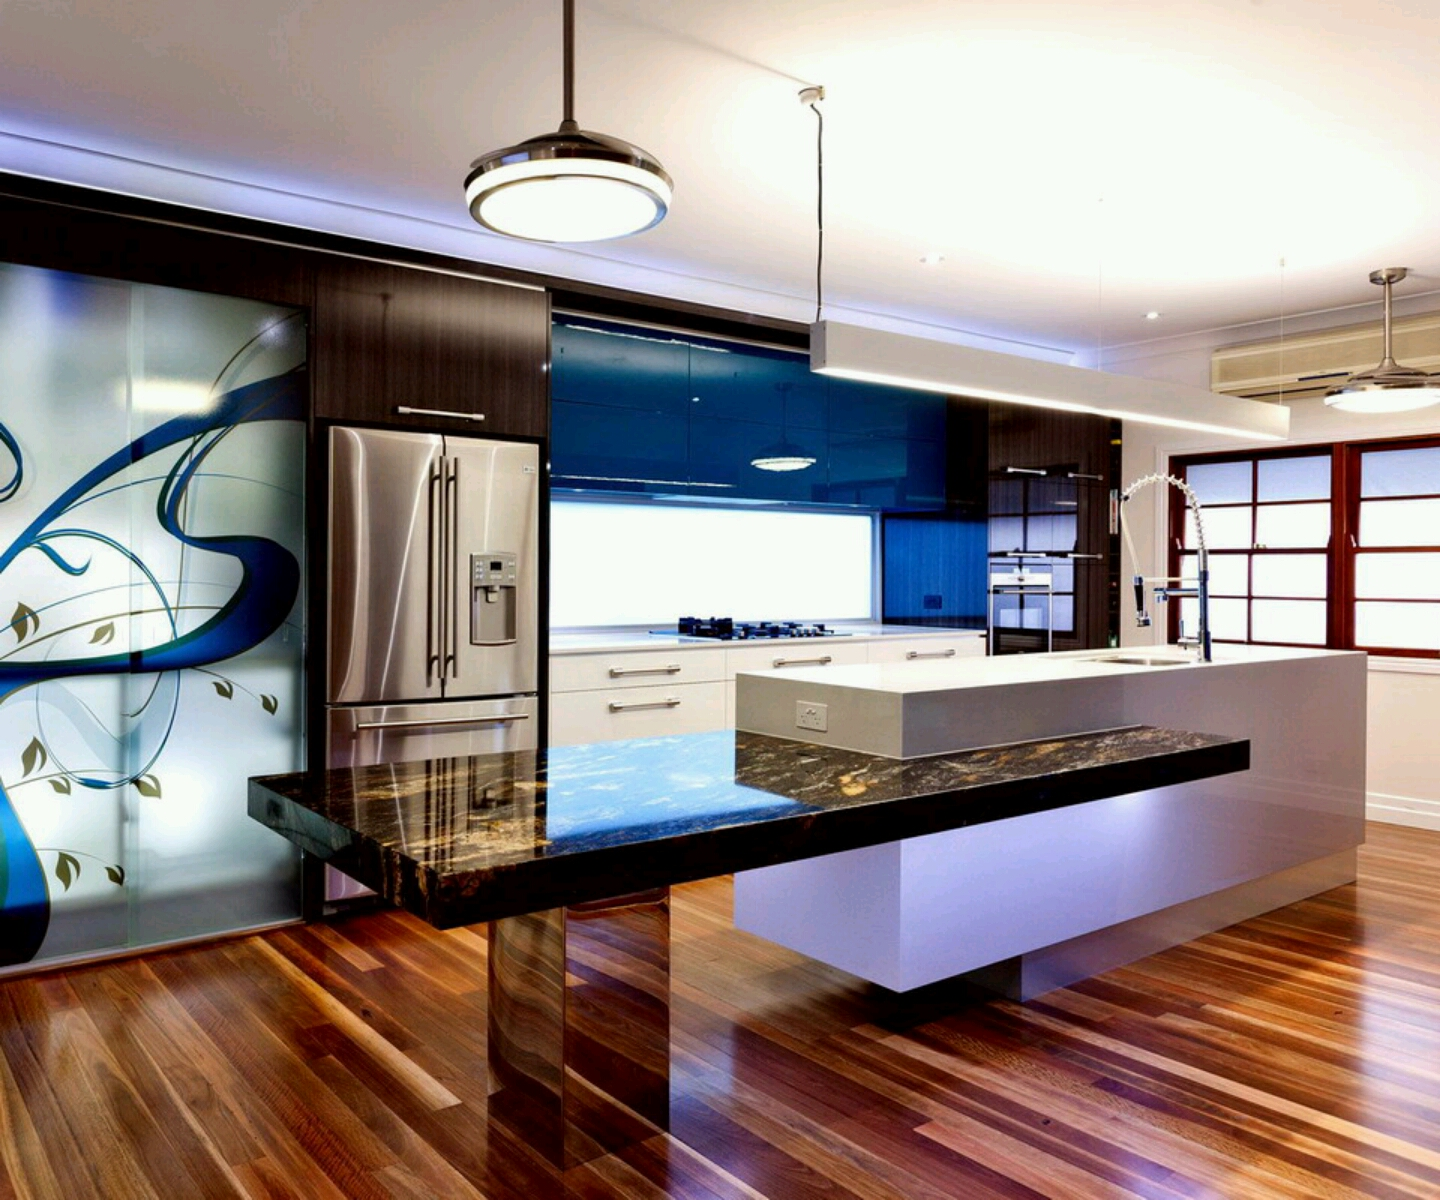 Ultra modern kitchen designs ideas new home designs for What is new in kitchen design